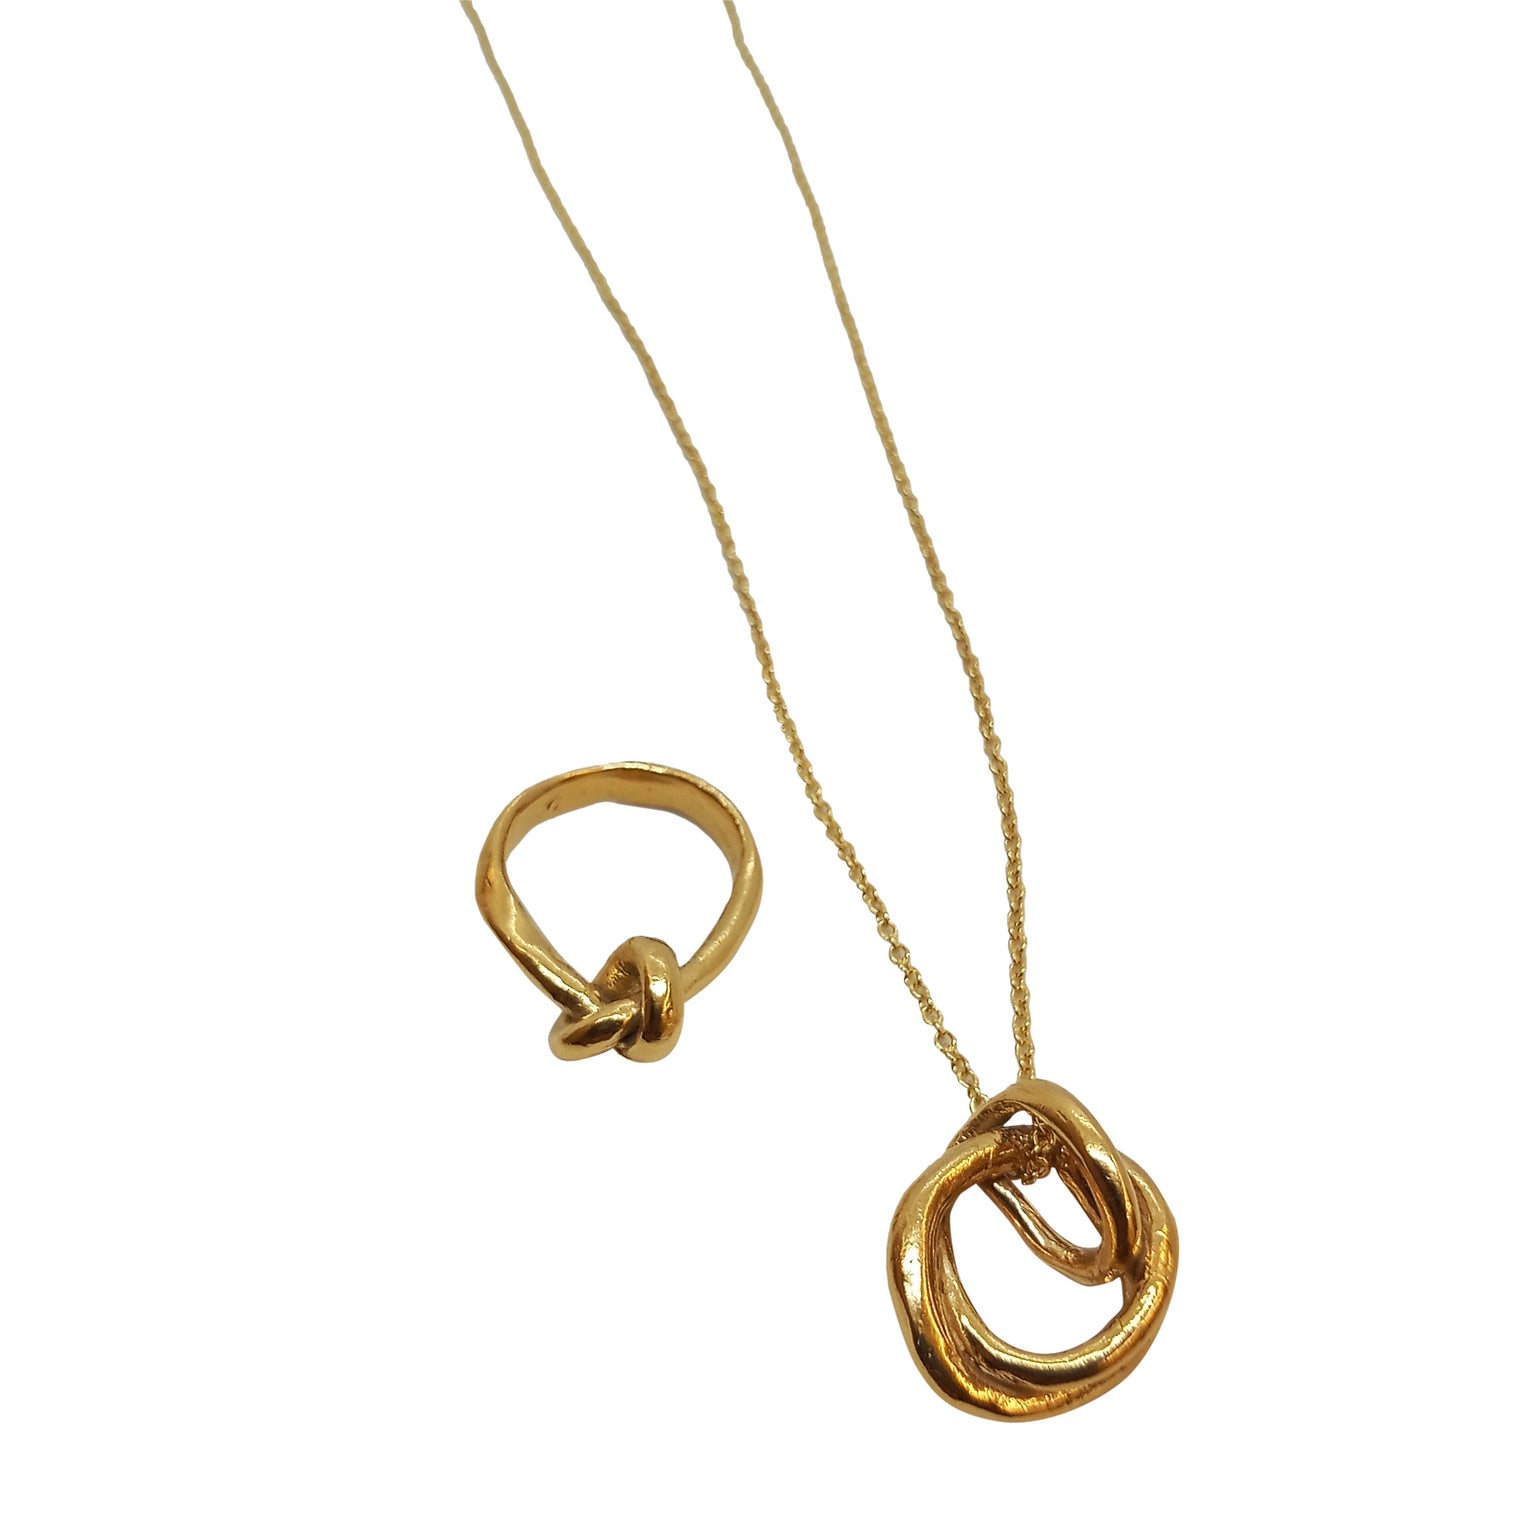 Image of Matching ring and necklace